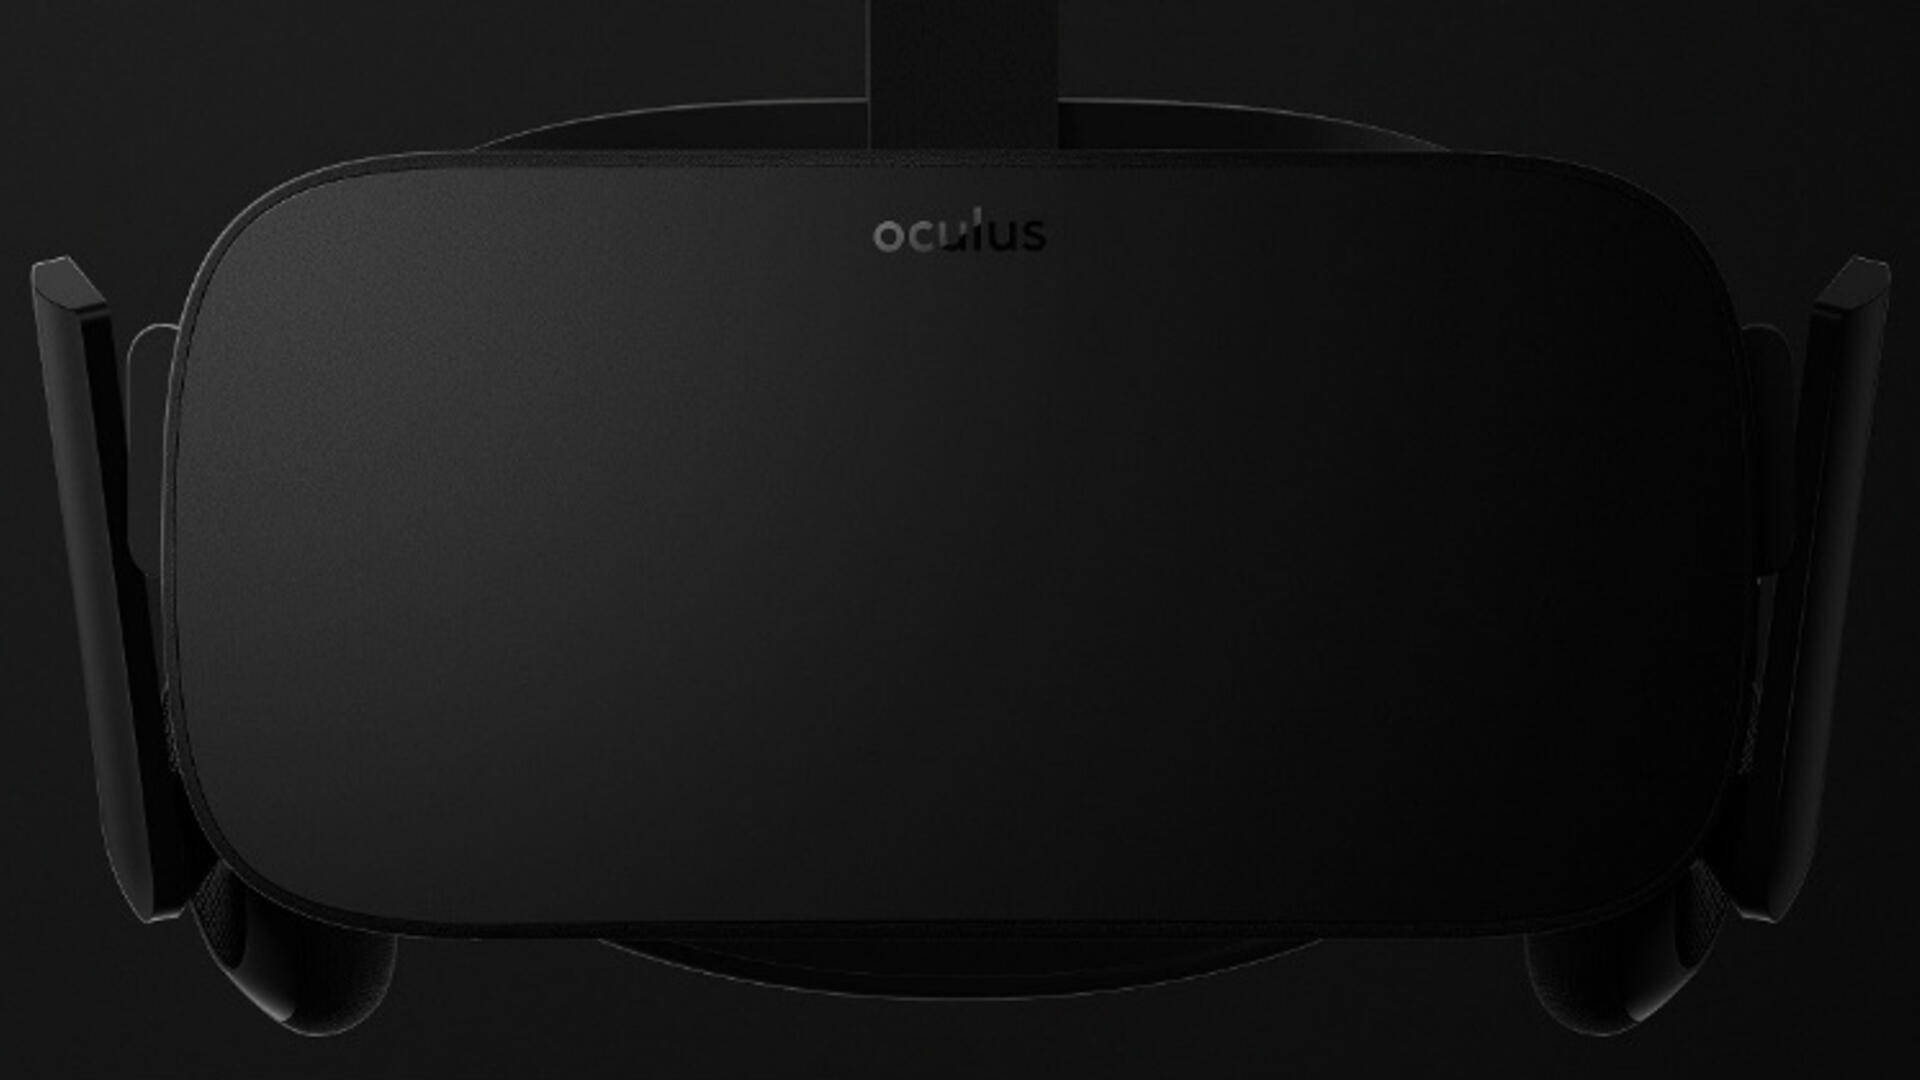 Oculus Rift is Coming in Q1 2016, But It's Not Alone Anymore